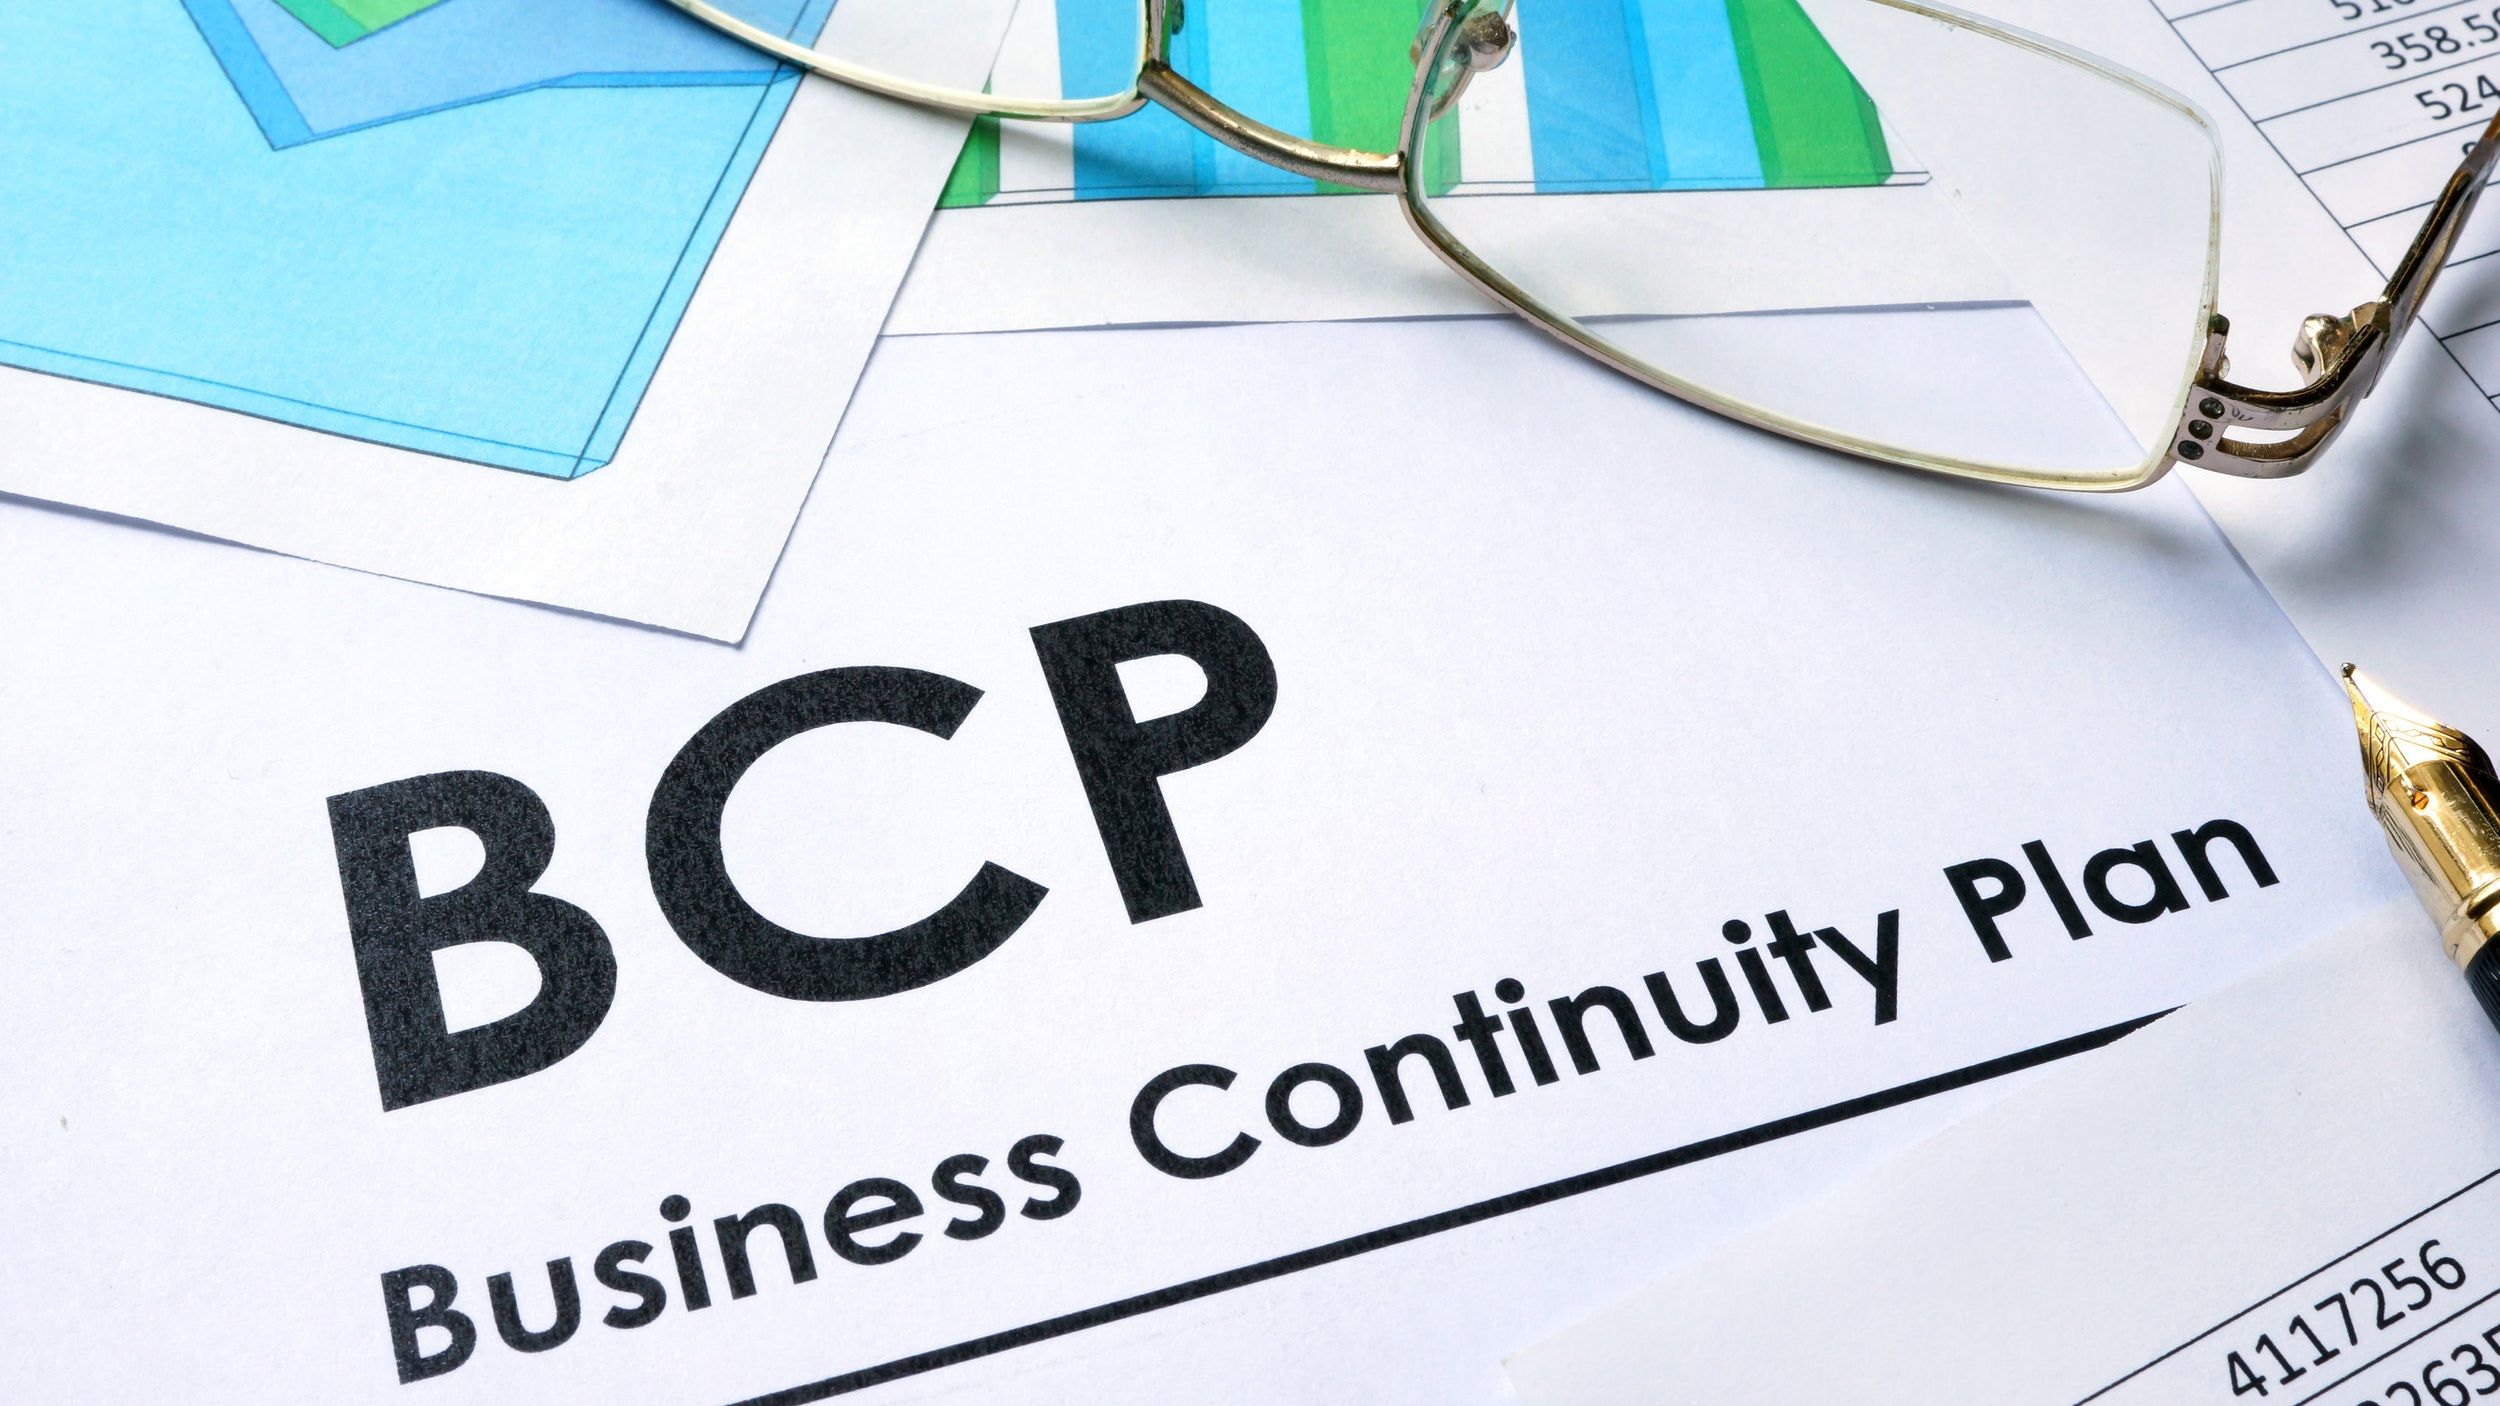 Business Continuity Planning (BCP) - A strategy through the recognition of threats and risks facing a company, with an eye to ensure that personnel and assets are protected and able to function in the event of a disaster.